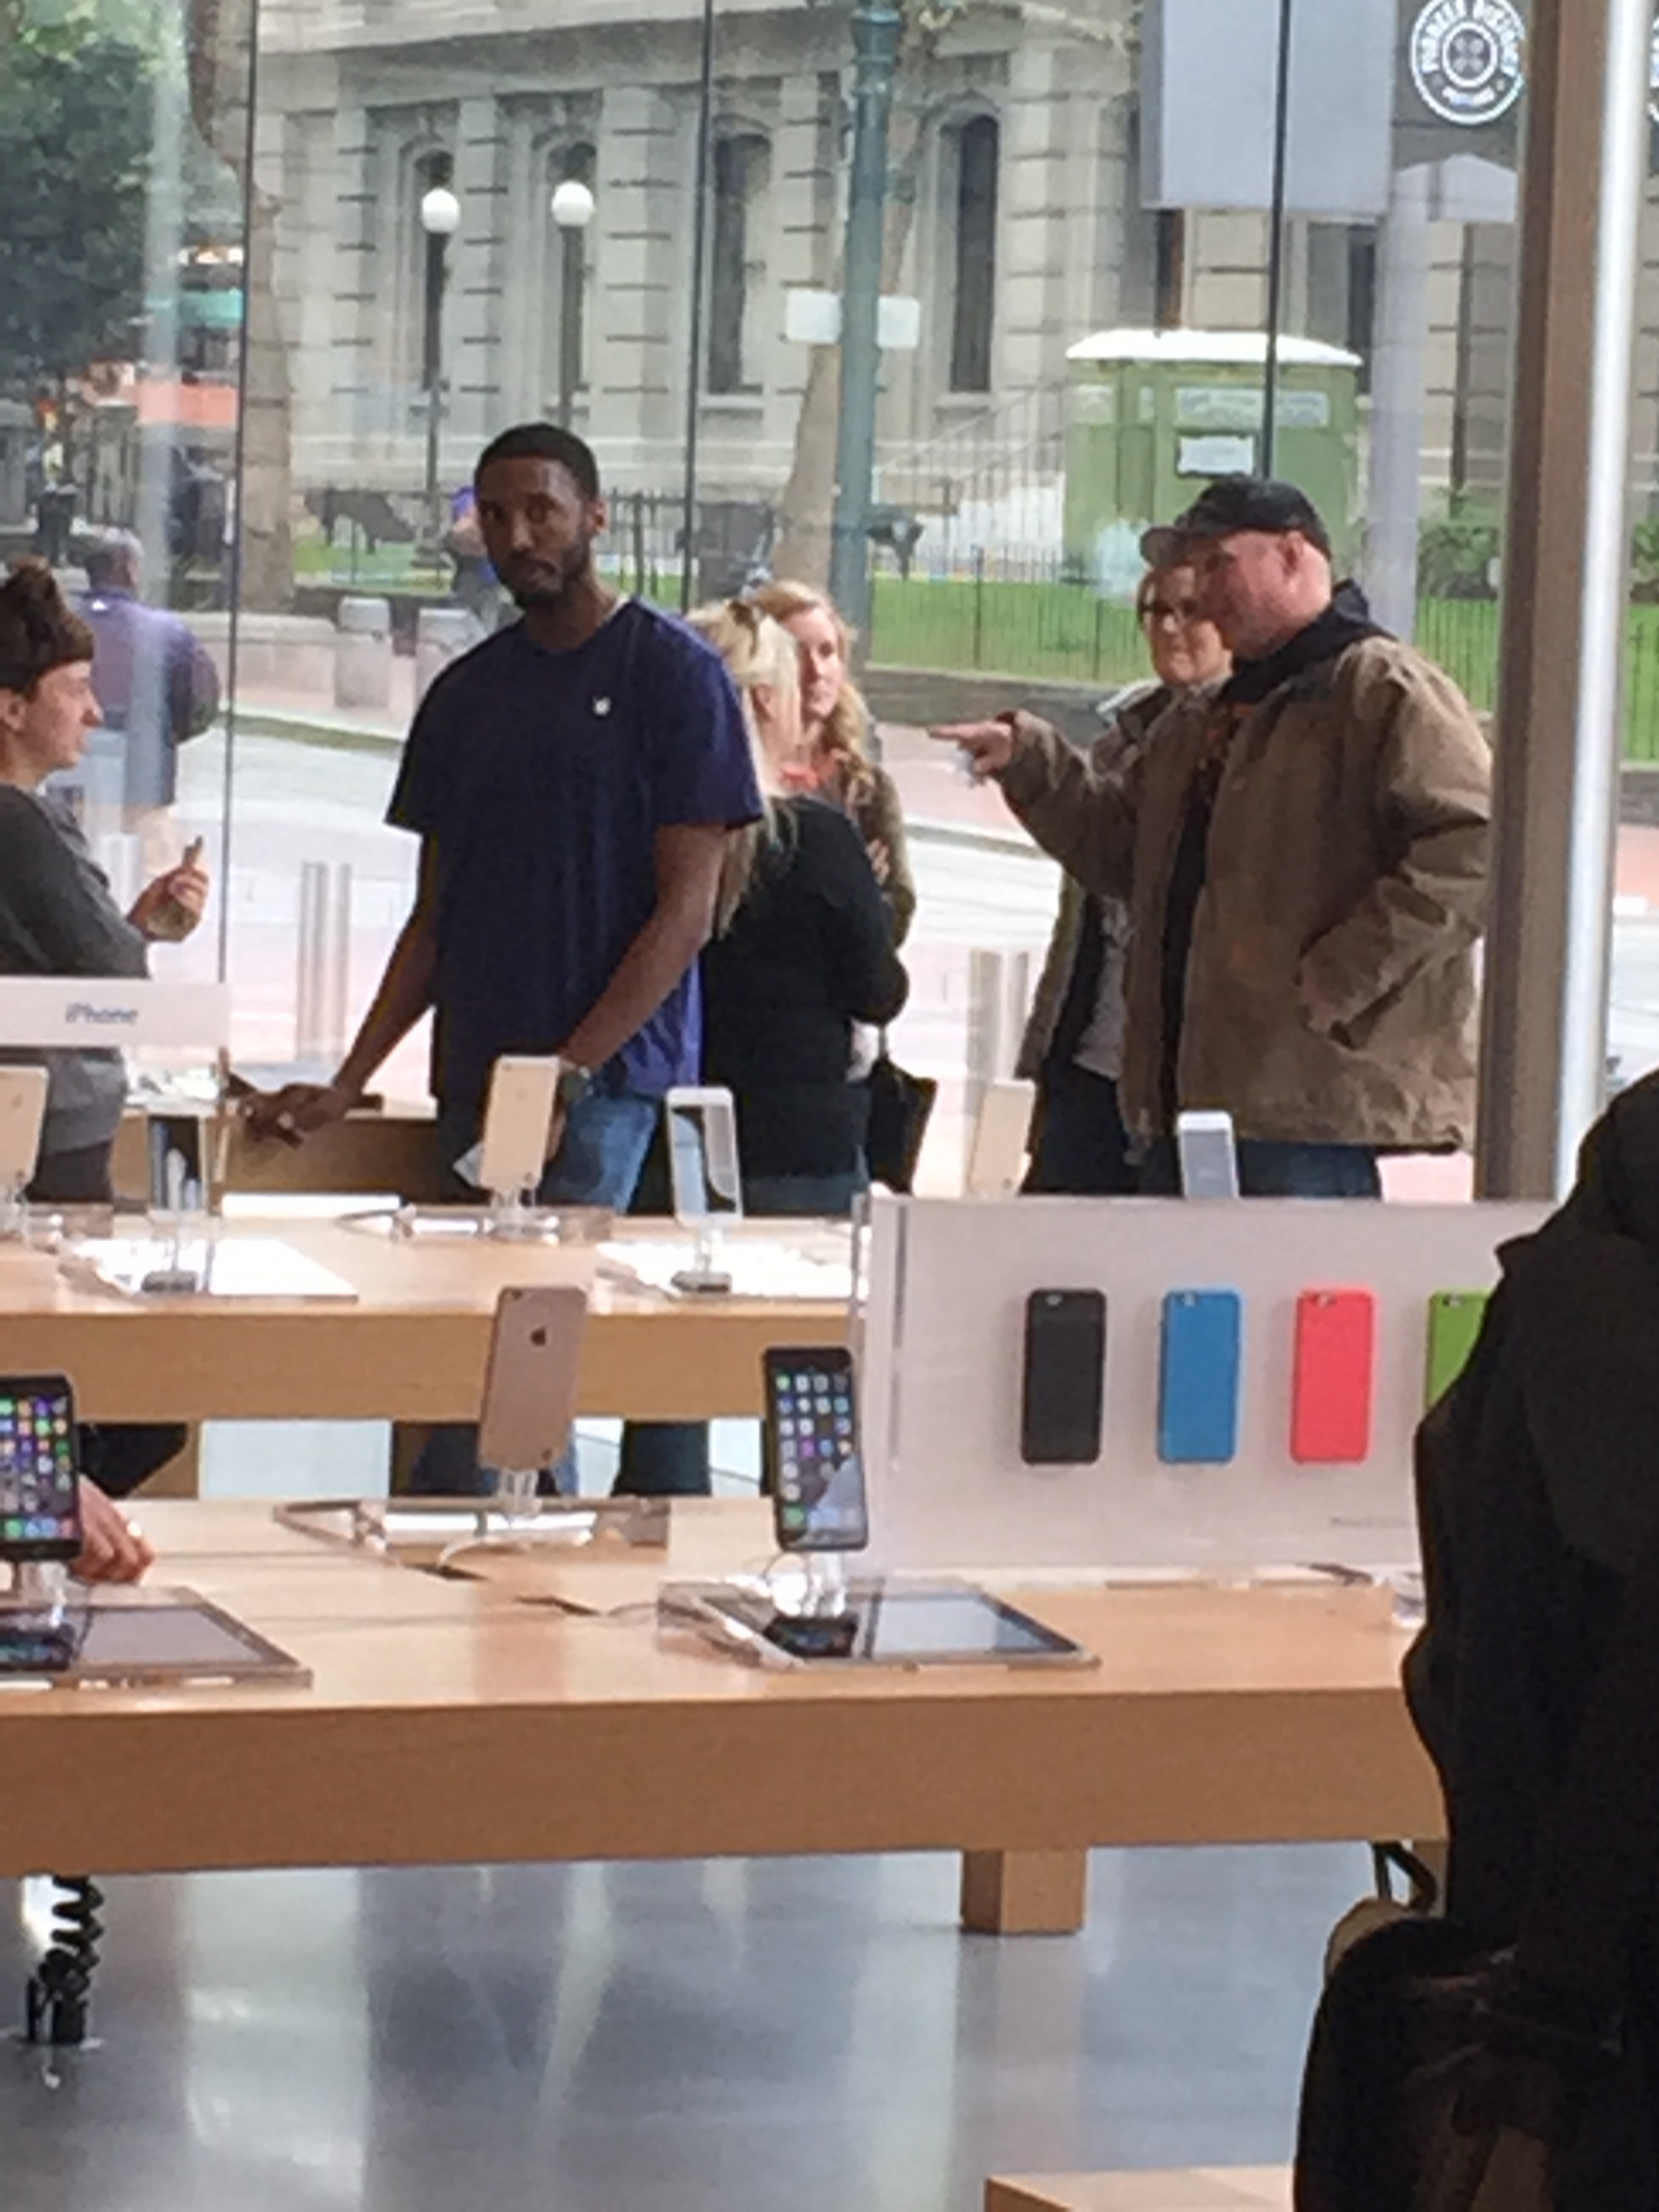 Garth Brooks Apple store in downtown Portland, OR